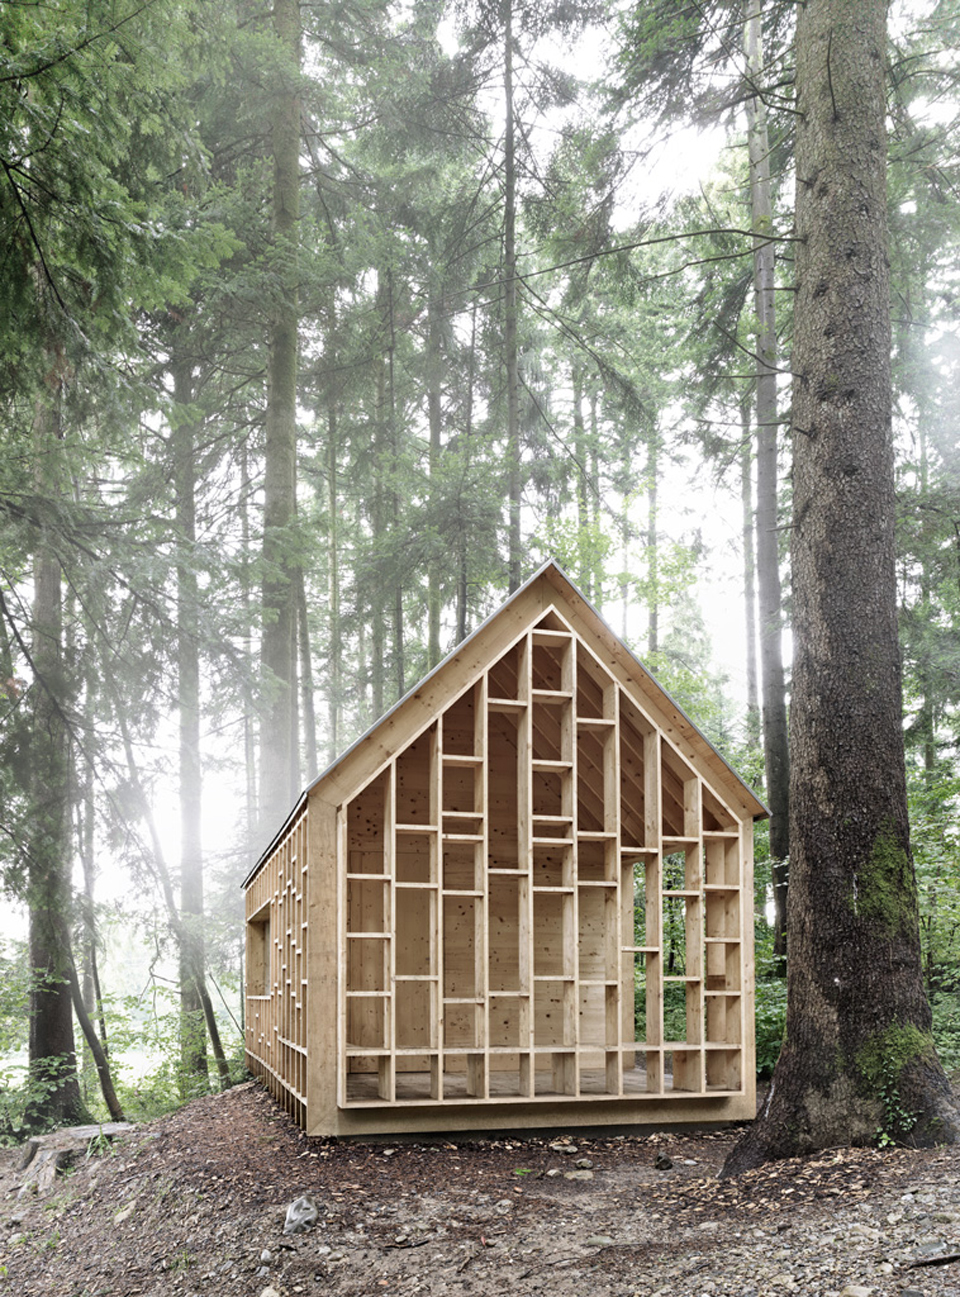 house-for-forest-owls-by-Bernd-Riegger-5